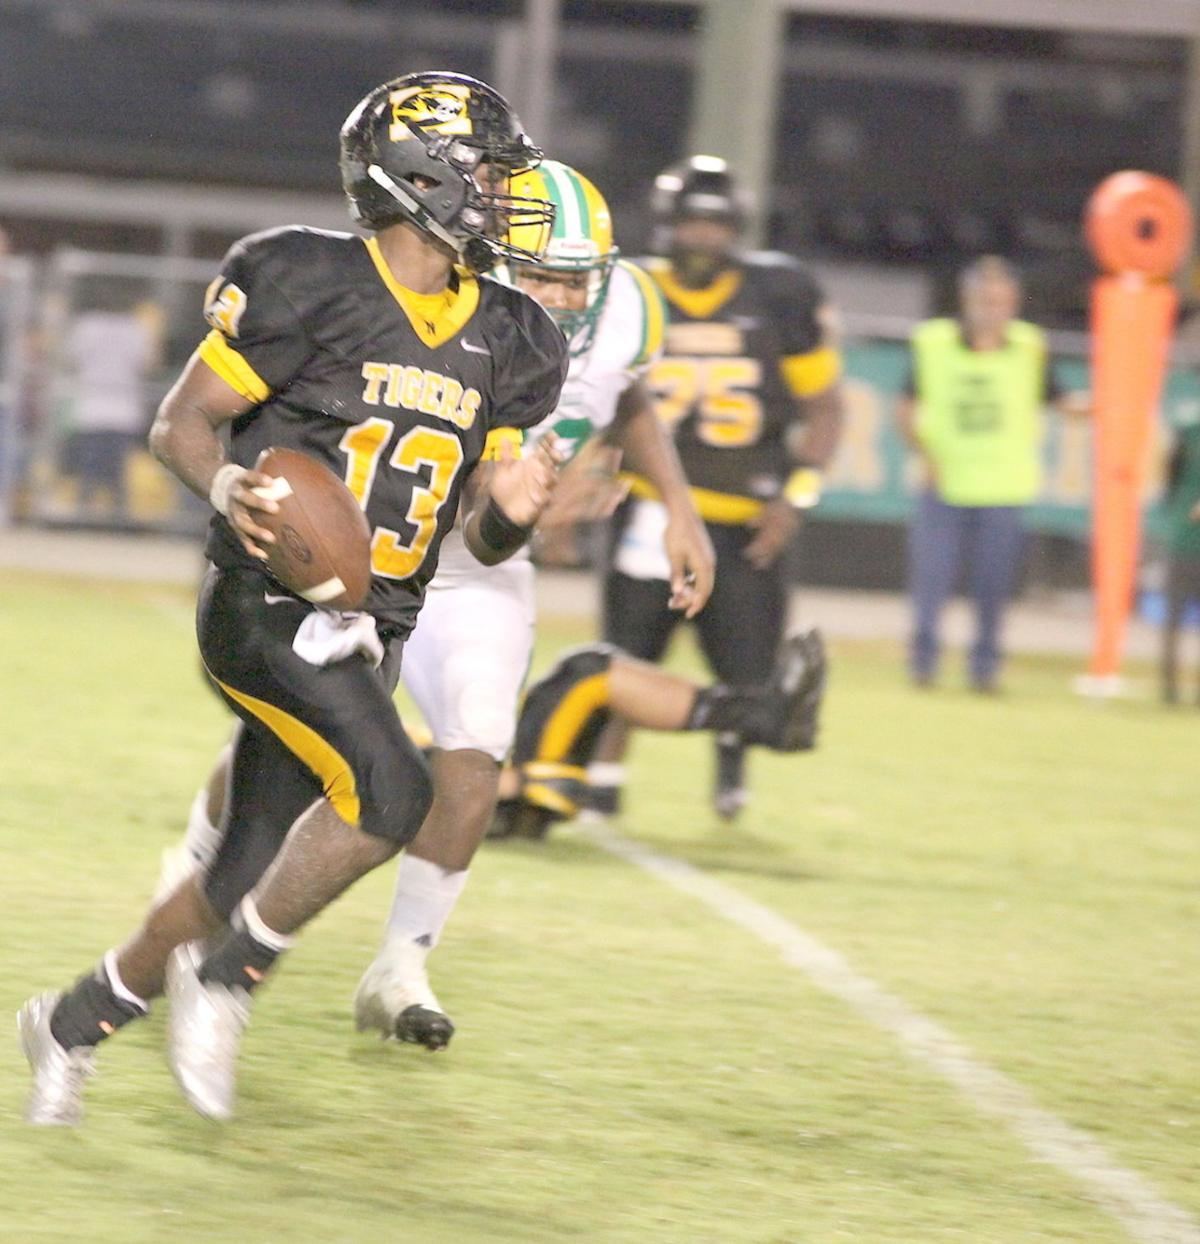 Fifi Magee will lead Northeast Jones into Friday night's county showdown with South Jones